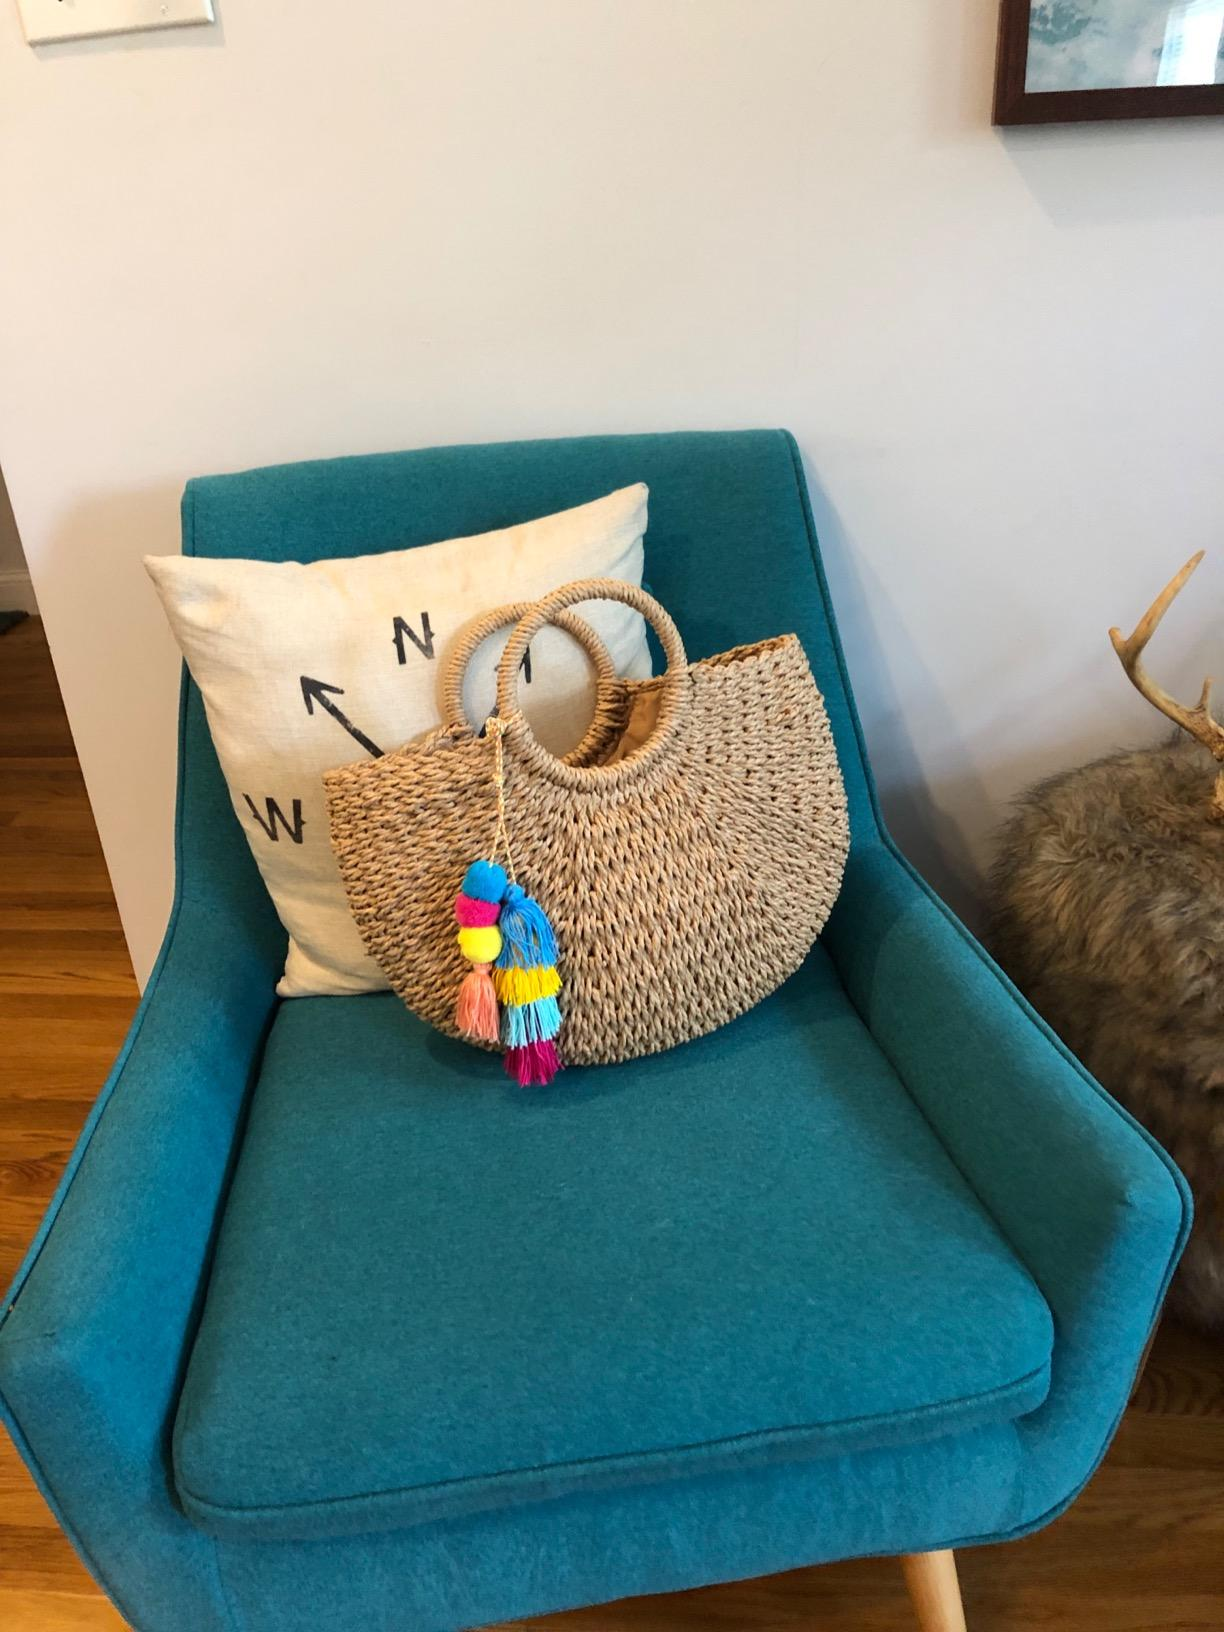 What casual wicker purse value